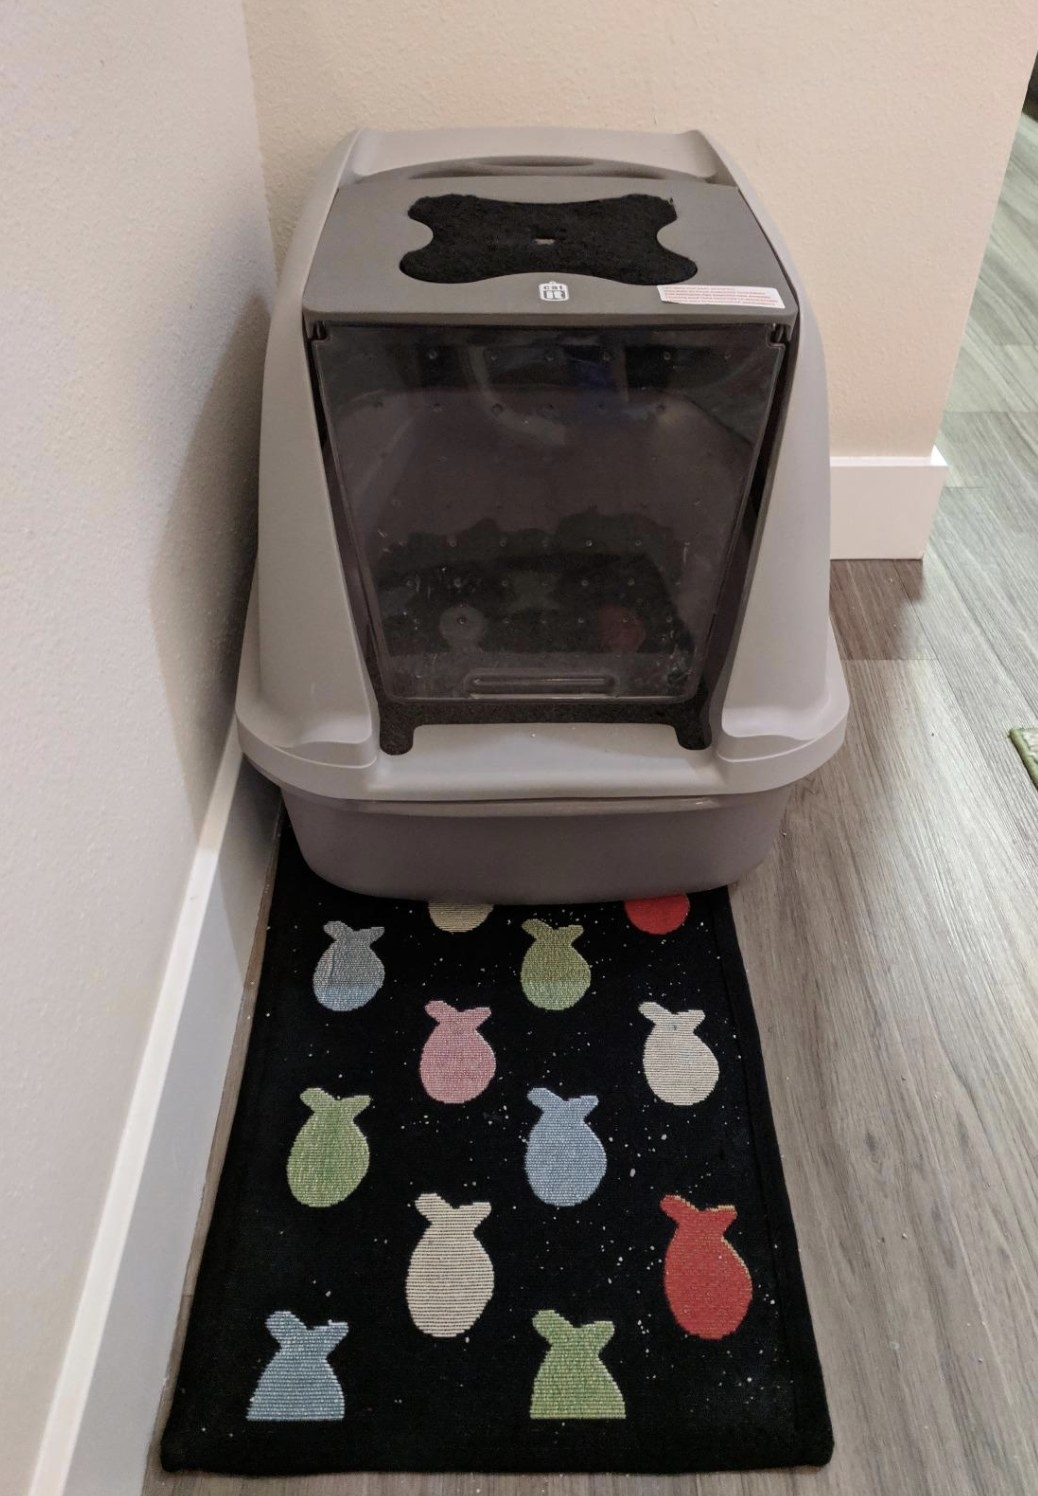 a grey catit litter box with a litter catching rug in front of it. This litter box has a window that cats can enter and exit from